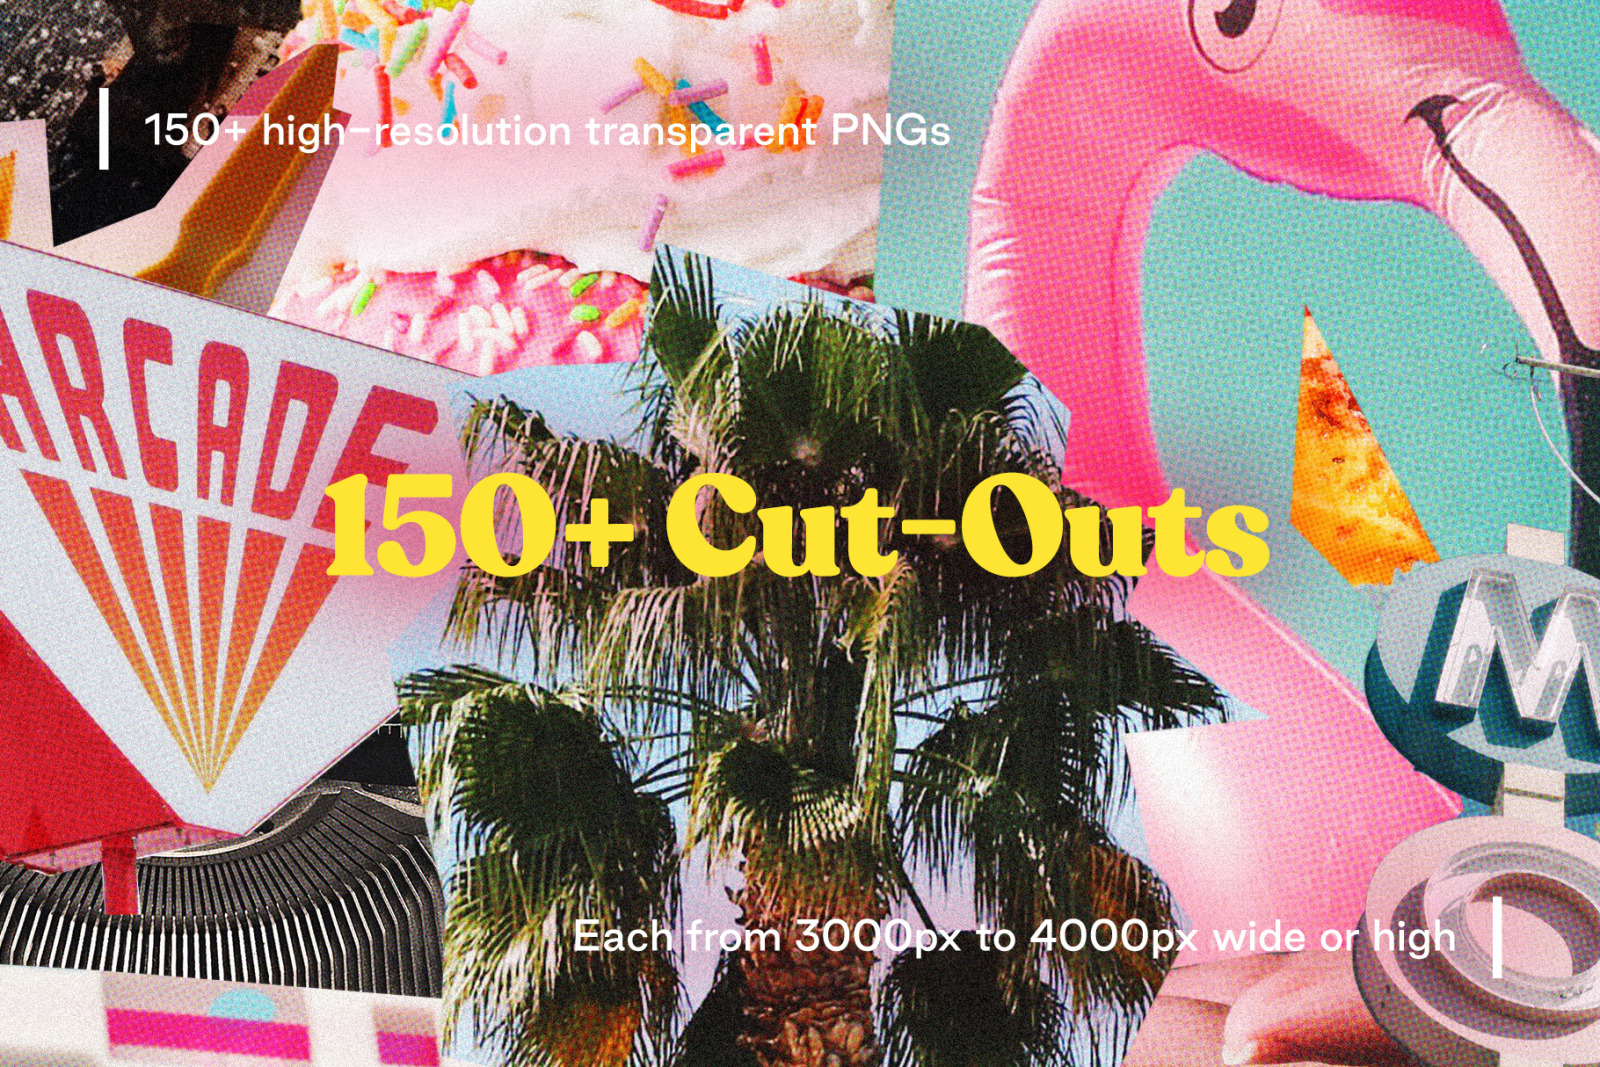 Collage - 150+ Vintage Style Cut-Outs